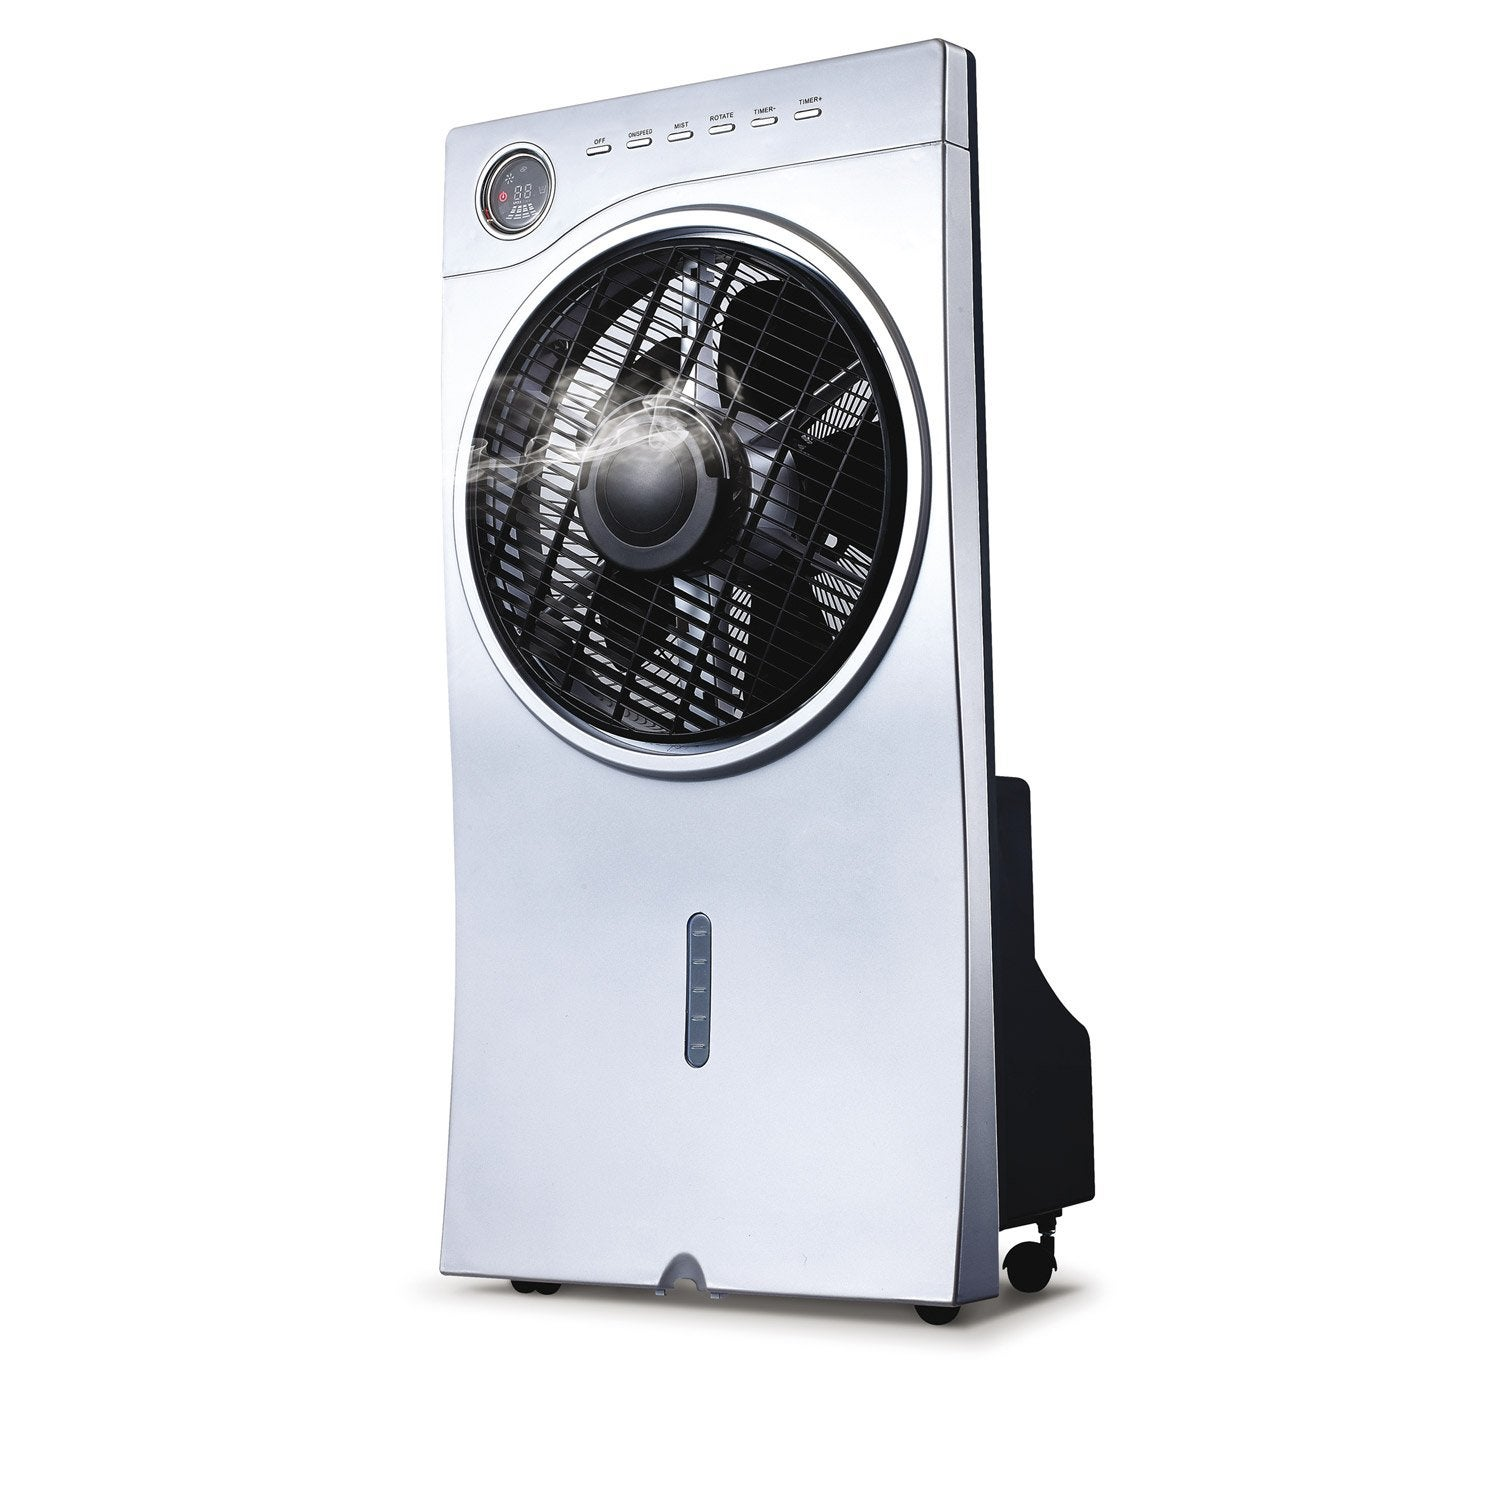 Ventilateur brumisateur sur pied argo polifemo breeze d for Ventilatori leroy merlin